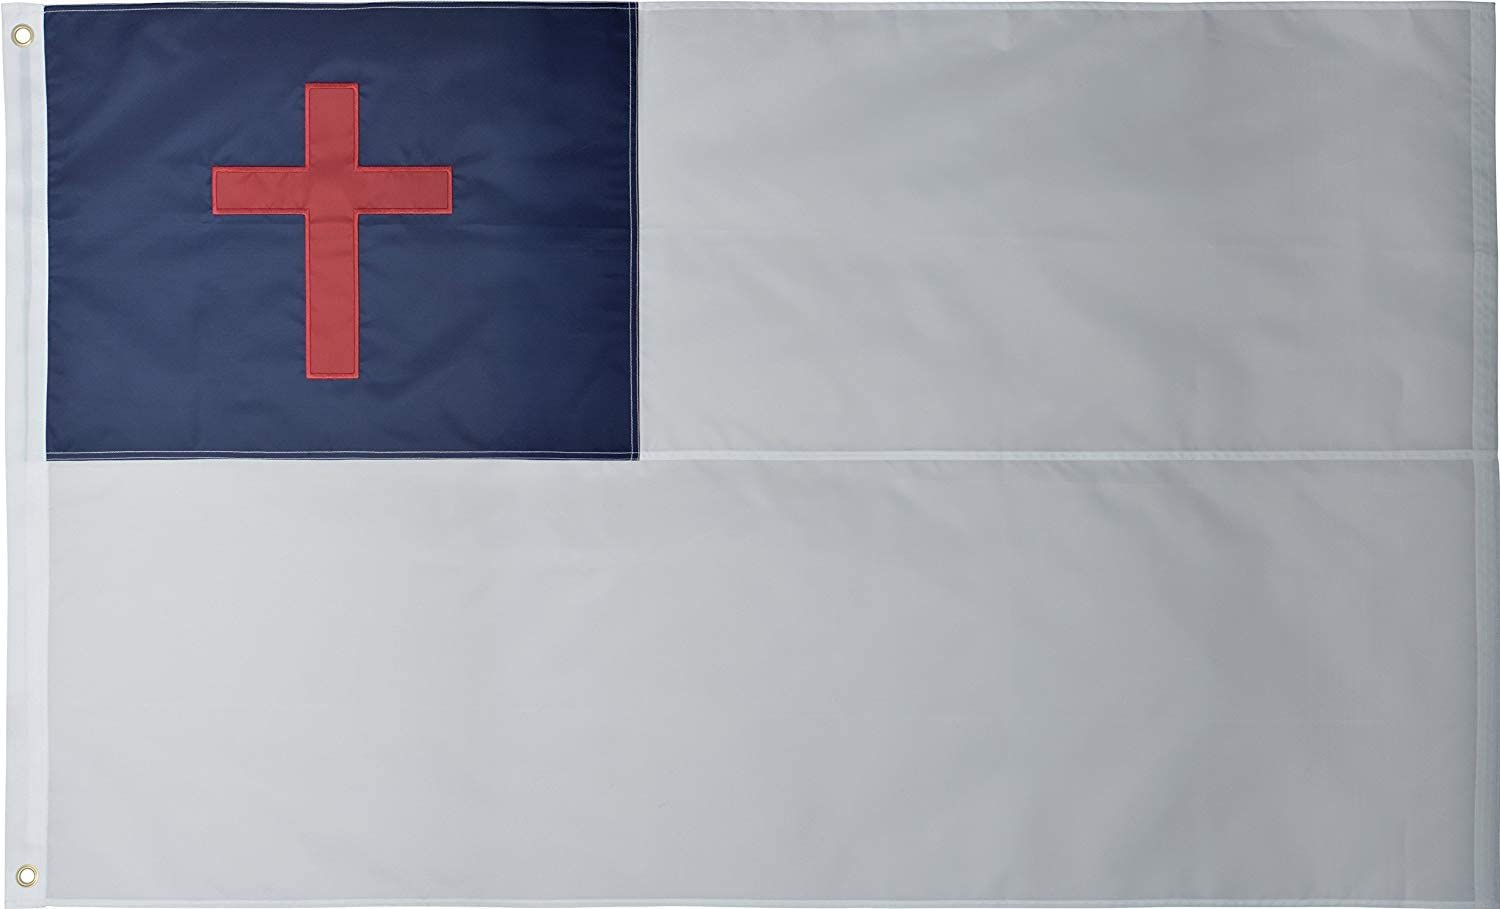 Green Grove Products Christian Flag 3' x Oakland Mall Premiu Manufacturer regenerated product Ft 5' Nylon 210D